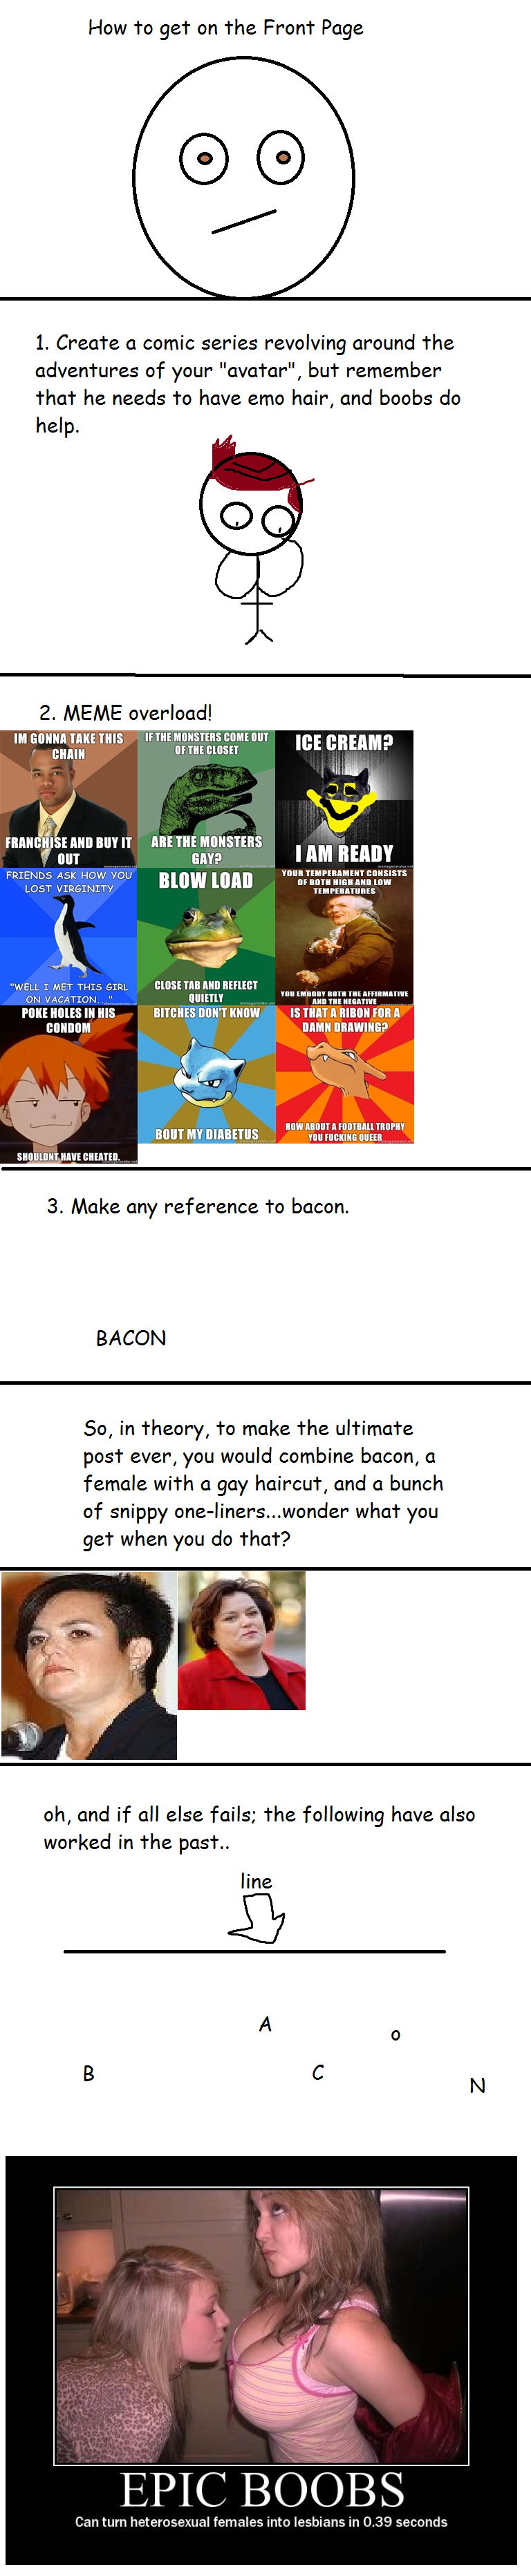 How To Make it On FunnyJunk. I suppose I really wouldn't know from lack of experience, but it's just from what I have observed . How to get on the Front Page I.